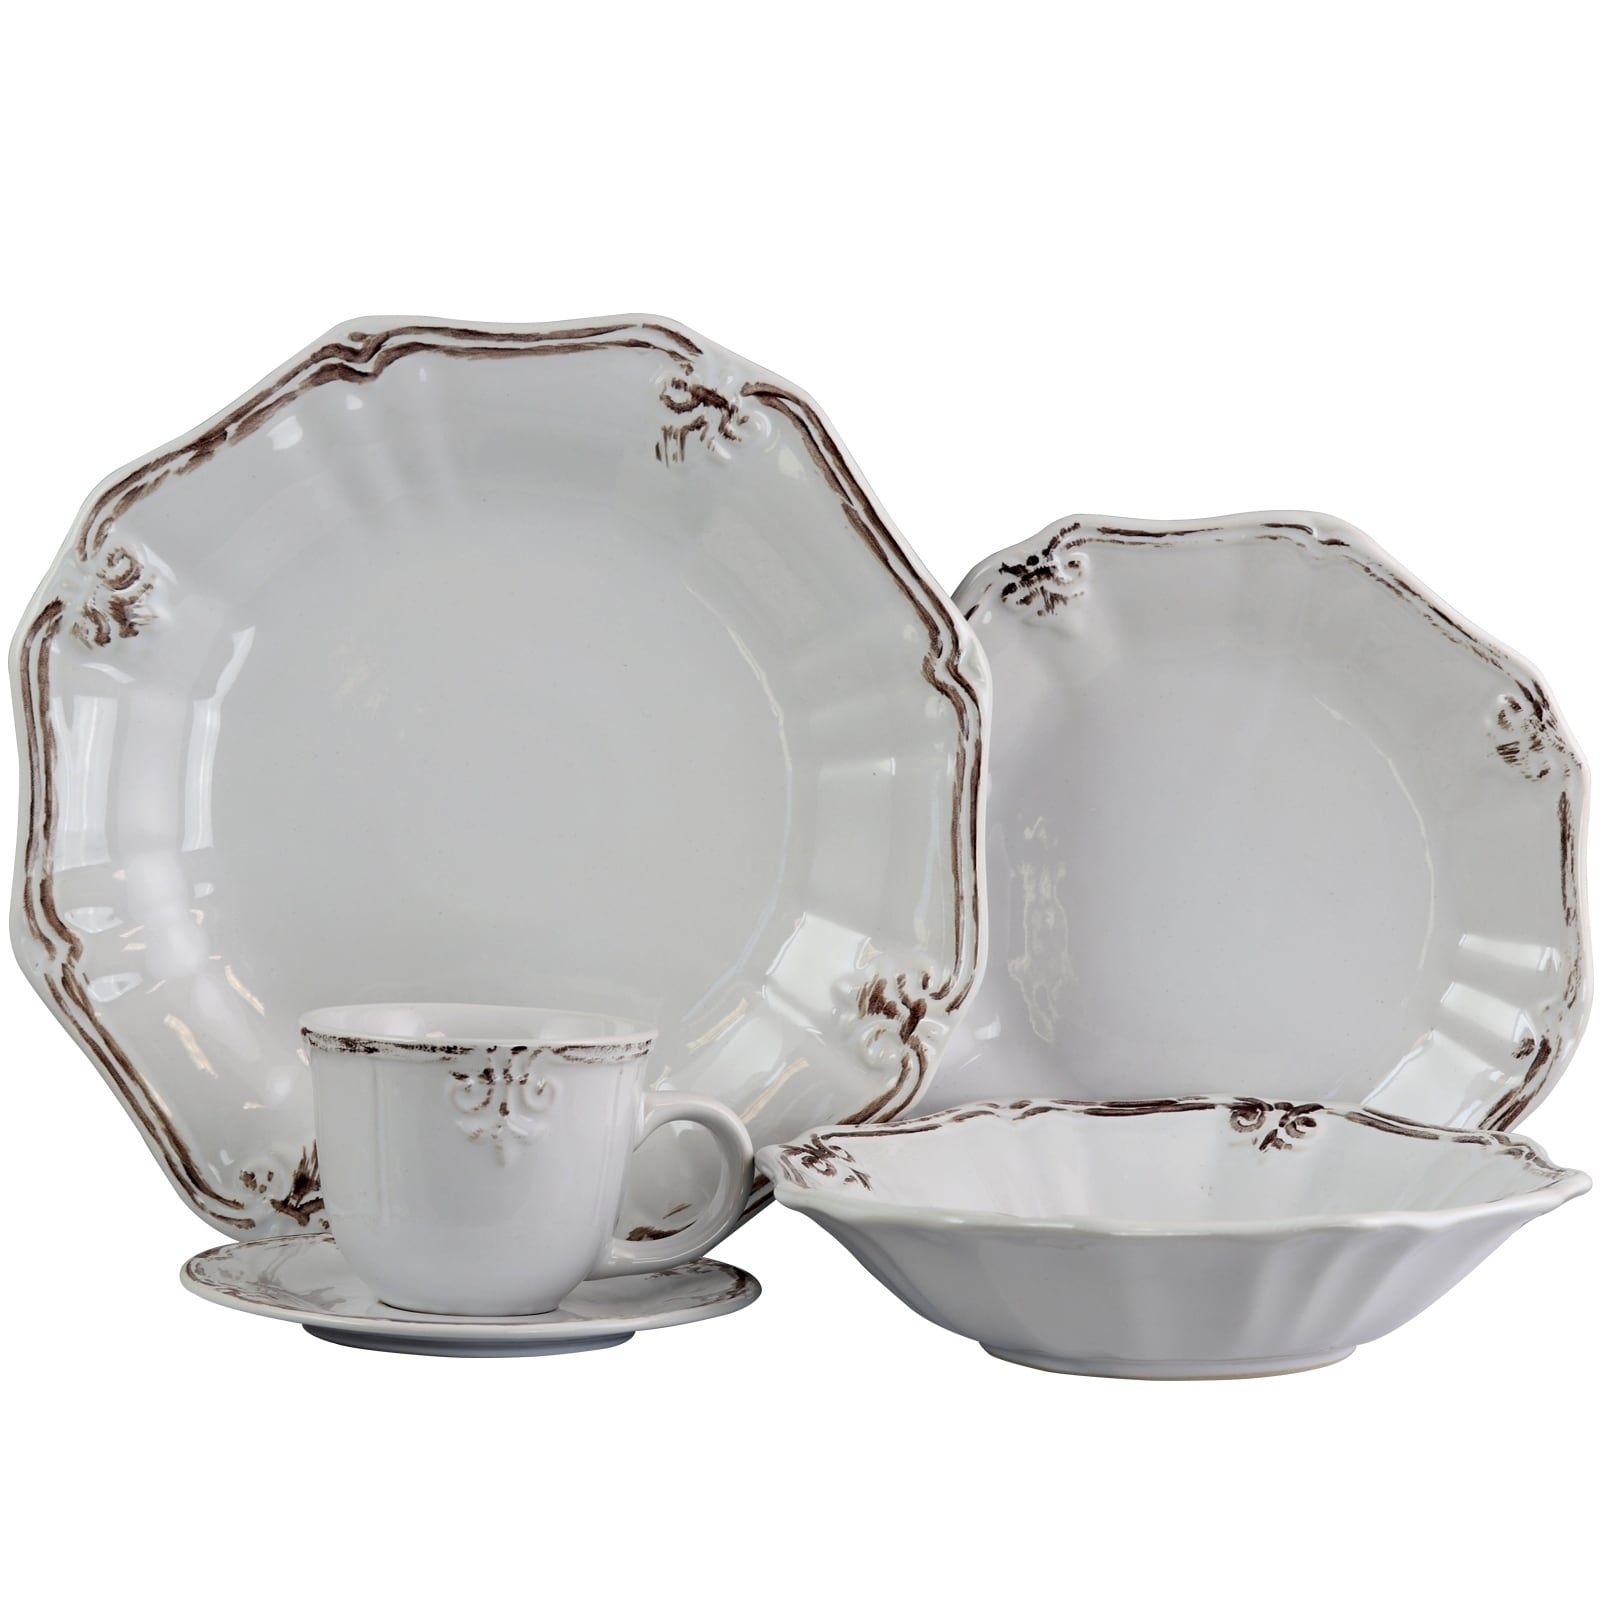 Elama Fleur De Lys 20 Piece Dinnerware Set in White - Free Shipping Today - Overstock - 24264178  sc 1 st  Overstock.com & Elama Fleur De Lys 20 Piece Dinnerware Set in White - Free Shipping ...